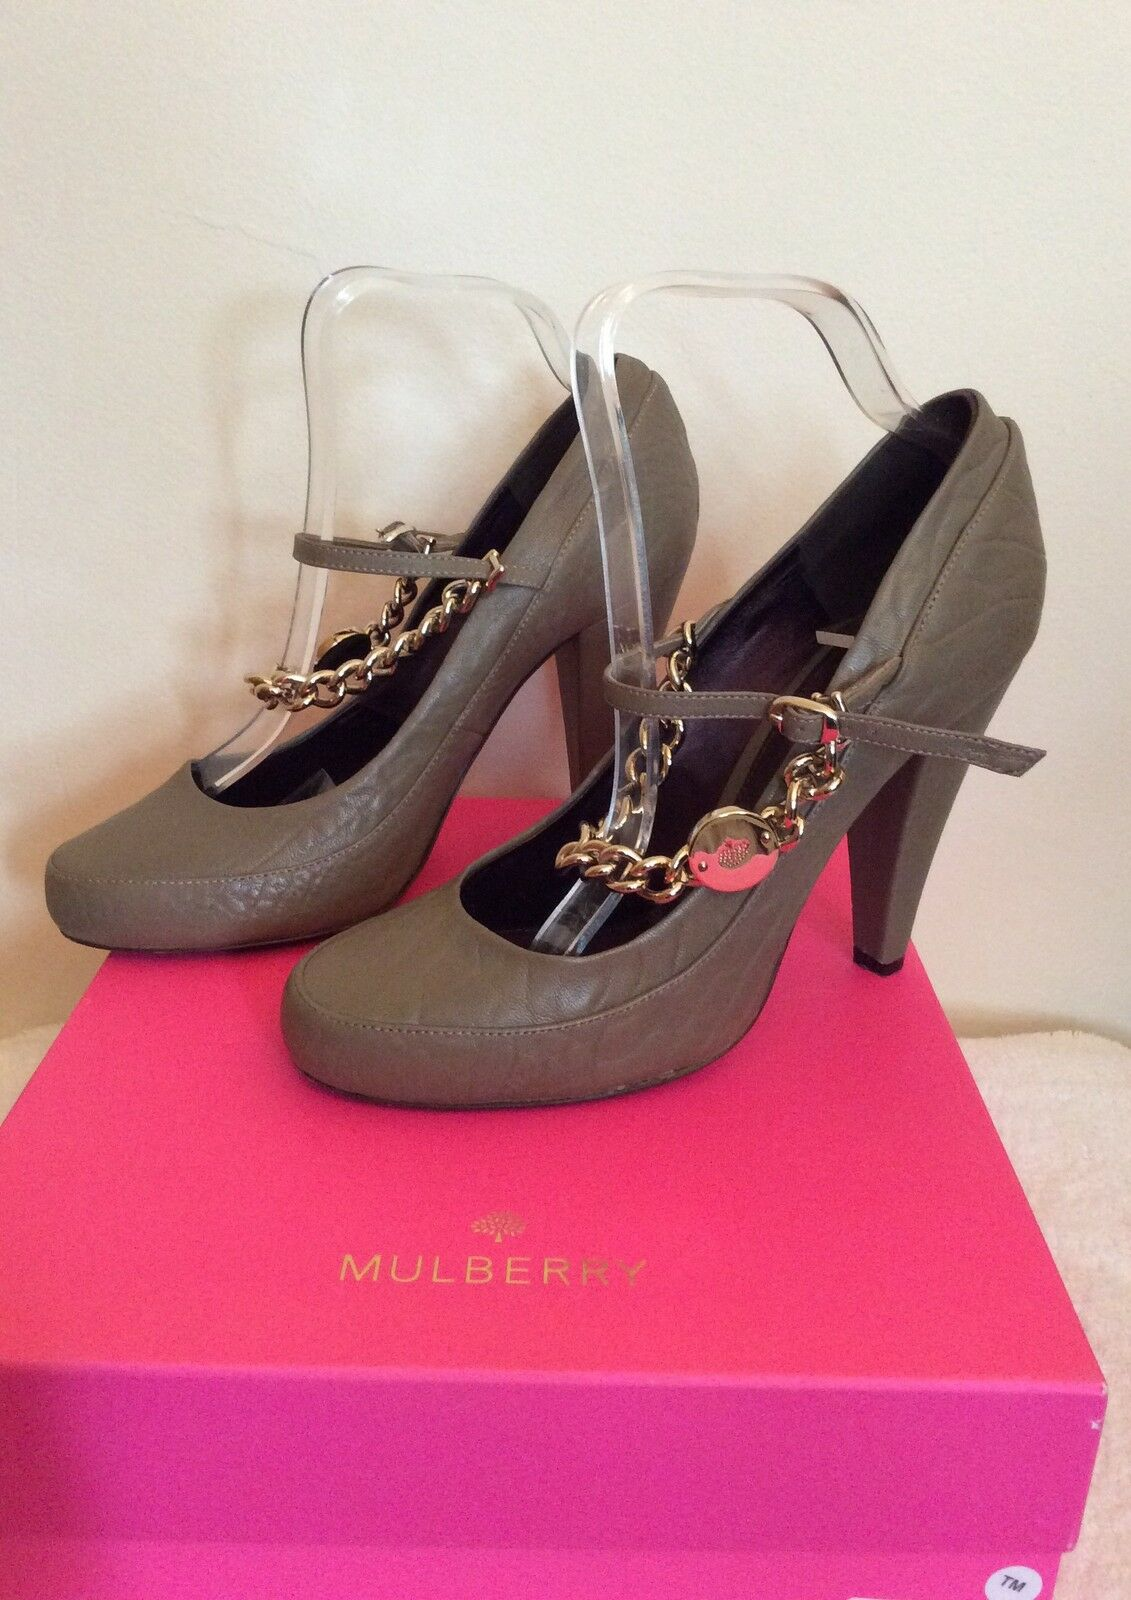 MULBERRY KHAKI/OLIVE KHAKI/OLIVE MULBERRY LEATHER CARTER CHARACTURE HEELS SIZE 7/40 WORN ONCE 2cf17e